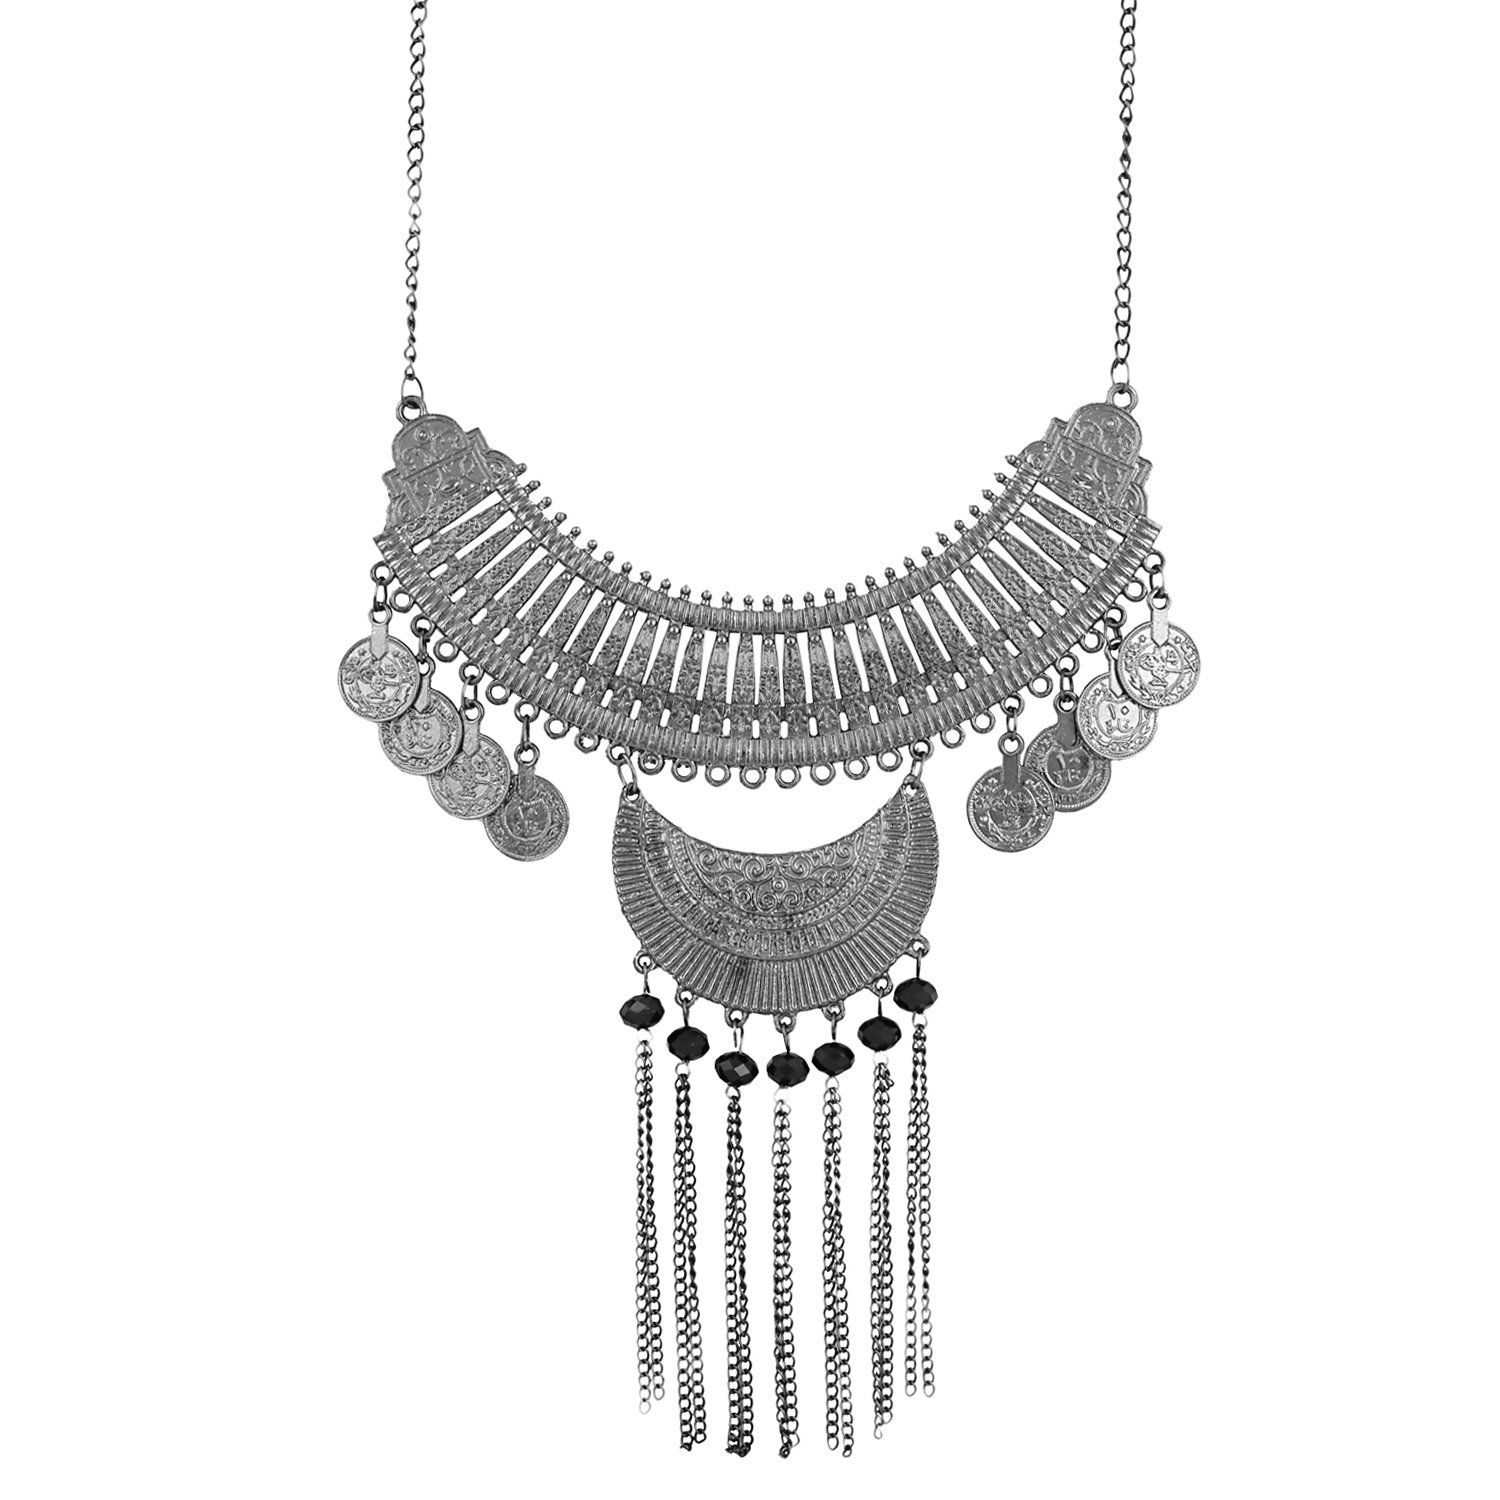 0e3060abc Andaaz Designer Tribal Fashion Oxidized Silver Necklace for Girls - Buy  Andaaz Designer Tribal Fashion Oxidized Silver Necklace for Girls Online at  Best ...